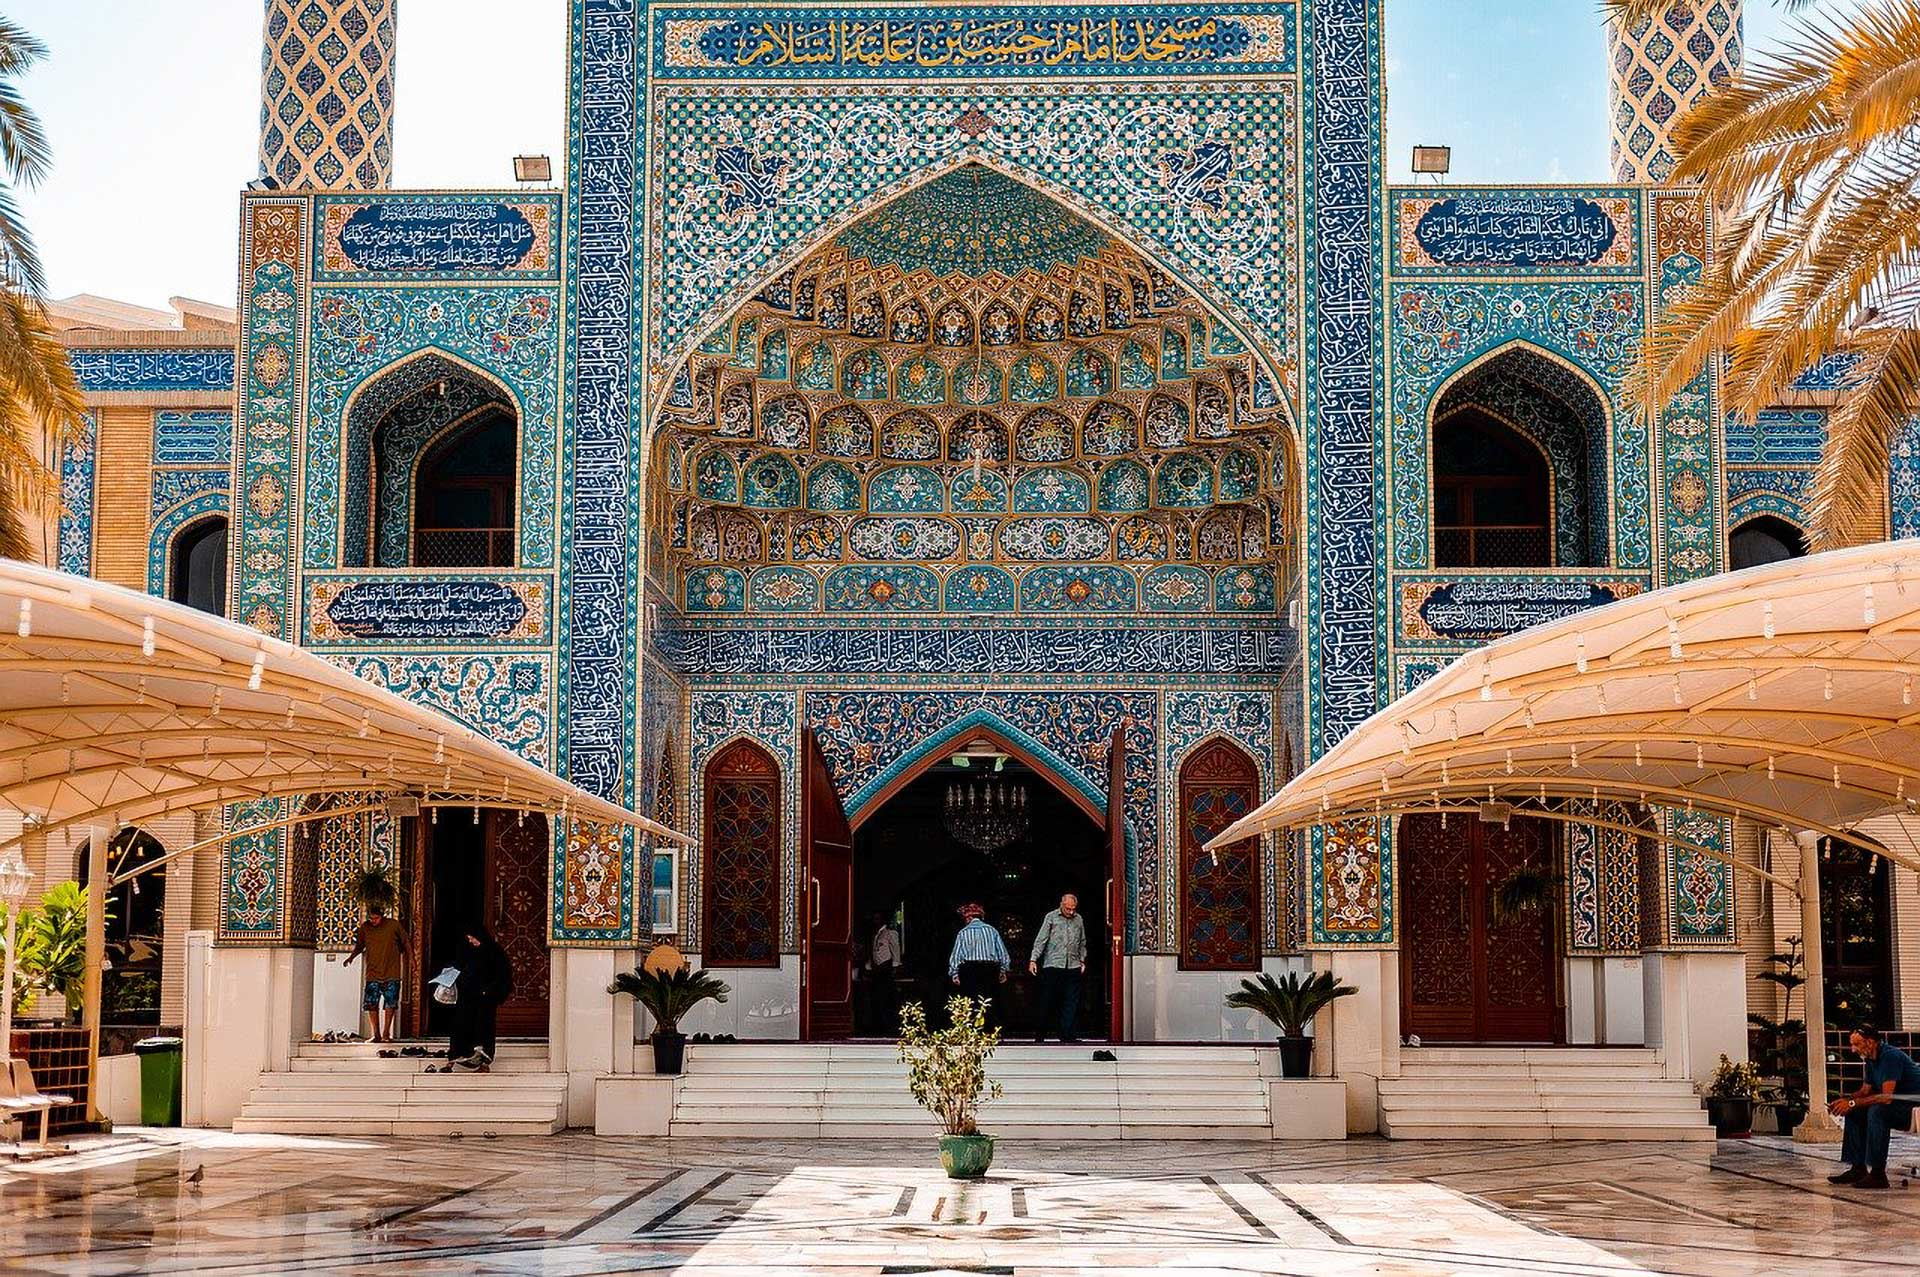 moroccan style Tiles mosque in Dubai